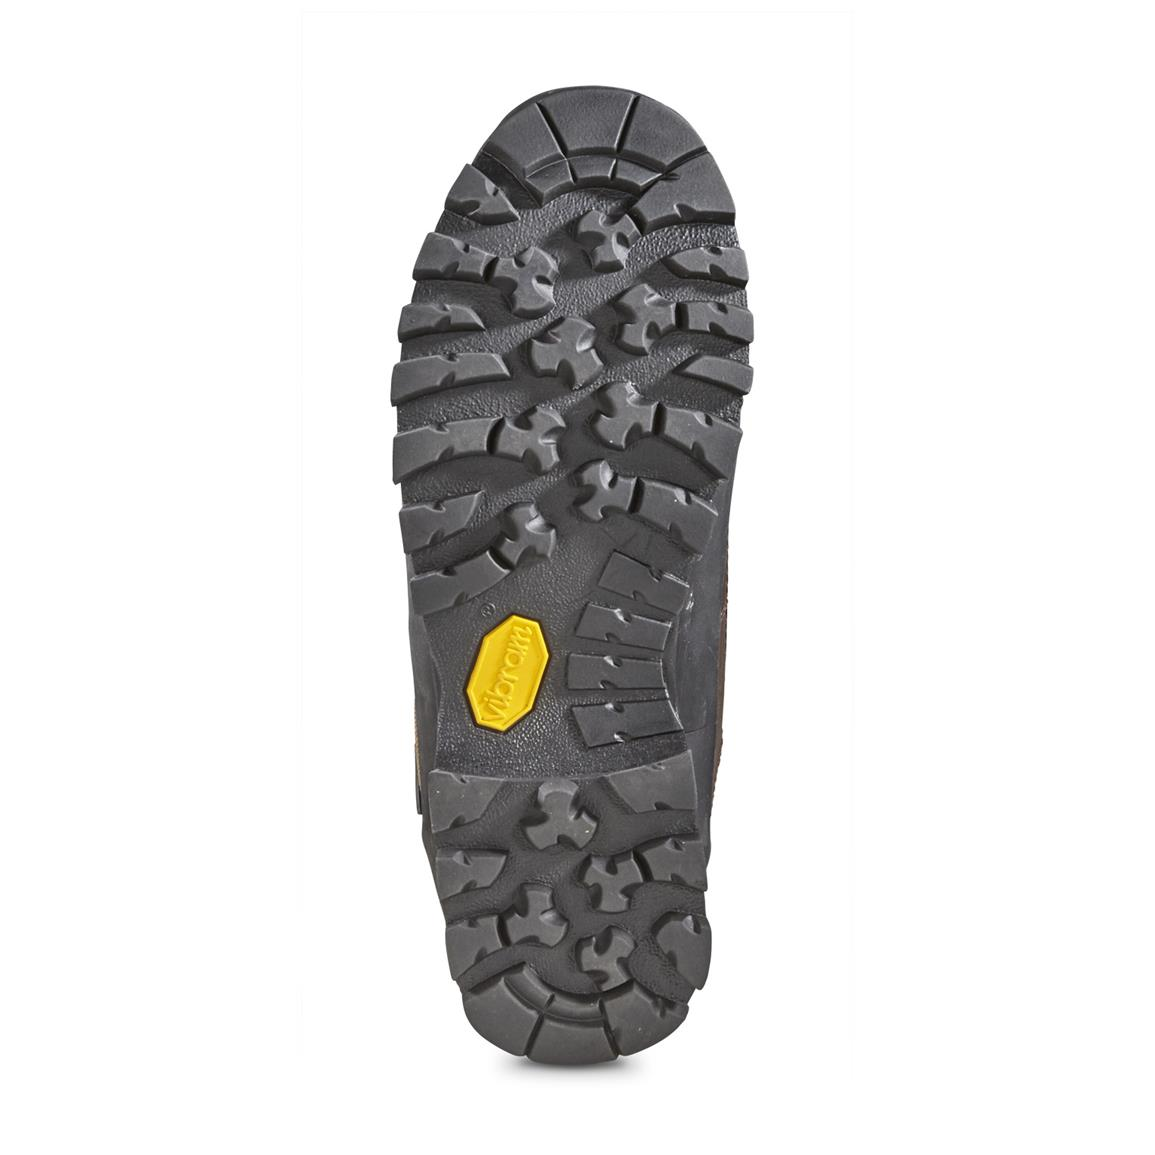 Vibram® Tsavo outsole excels on steep terrain and slick surfaces